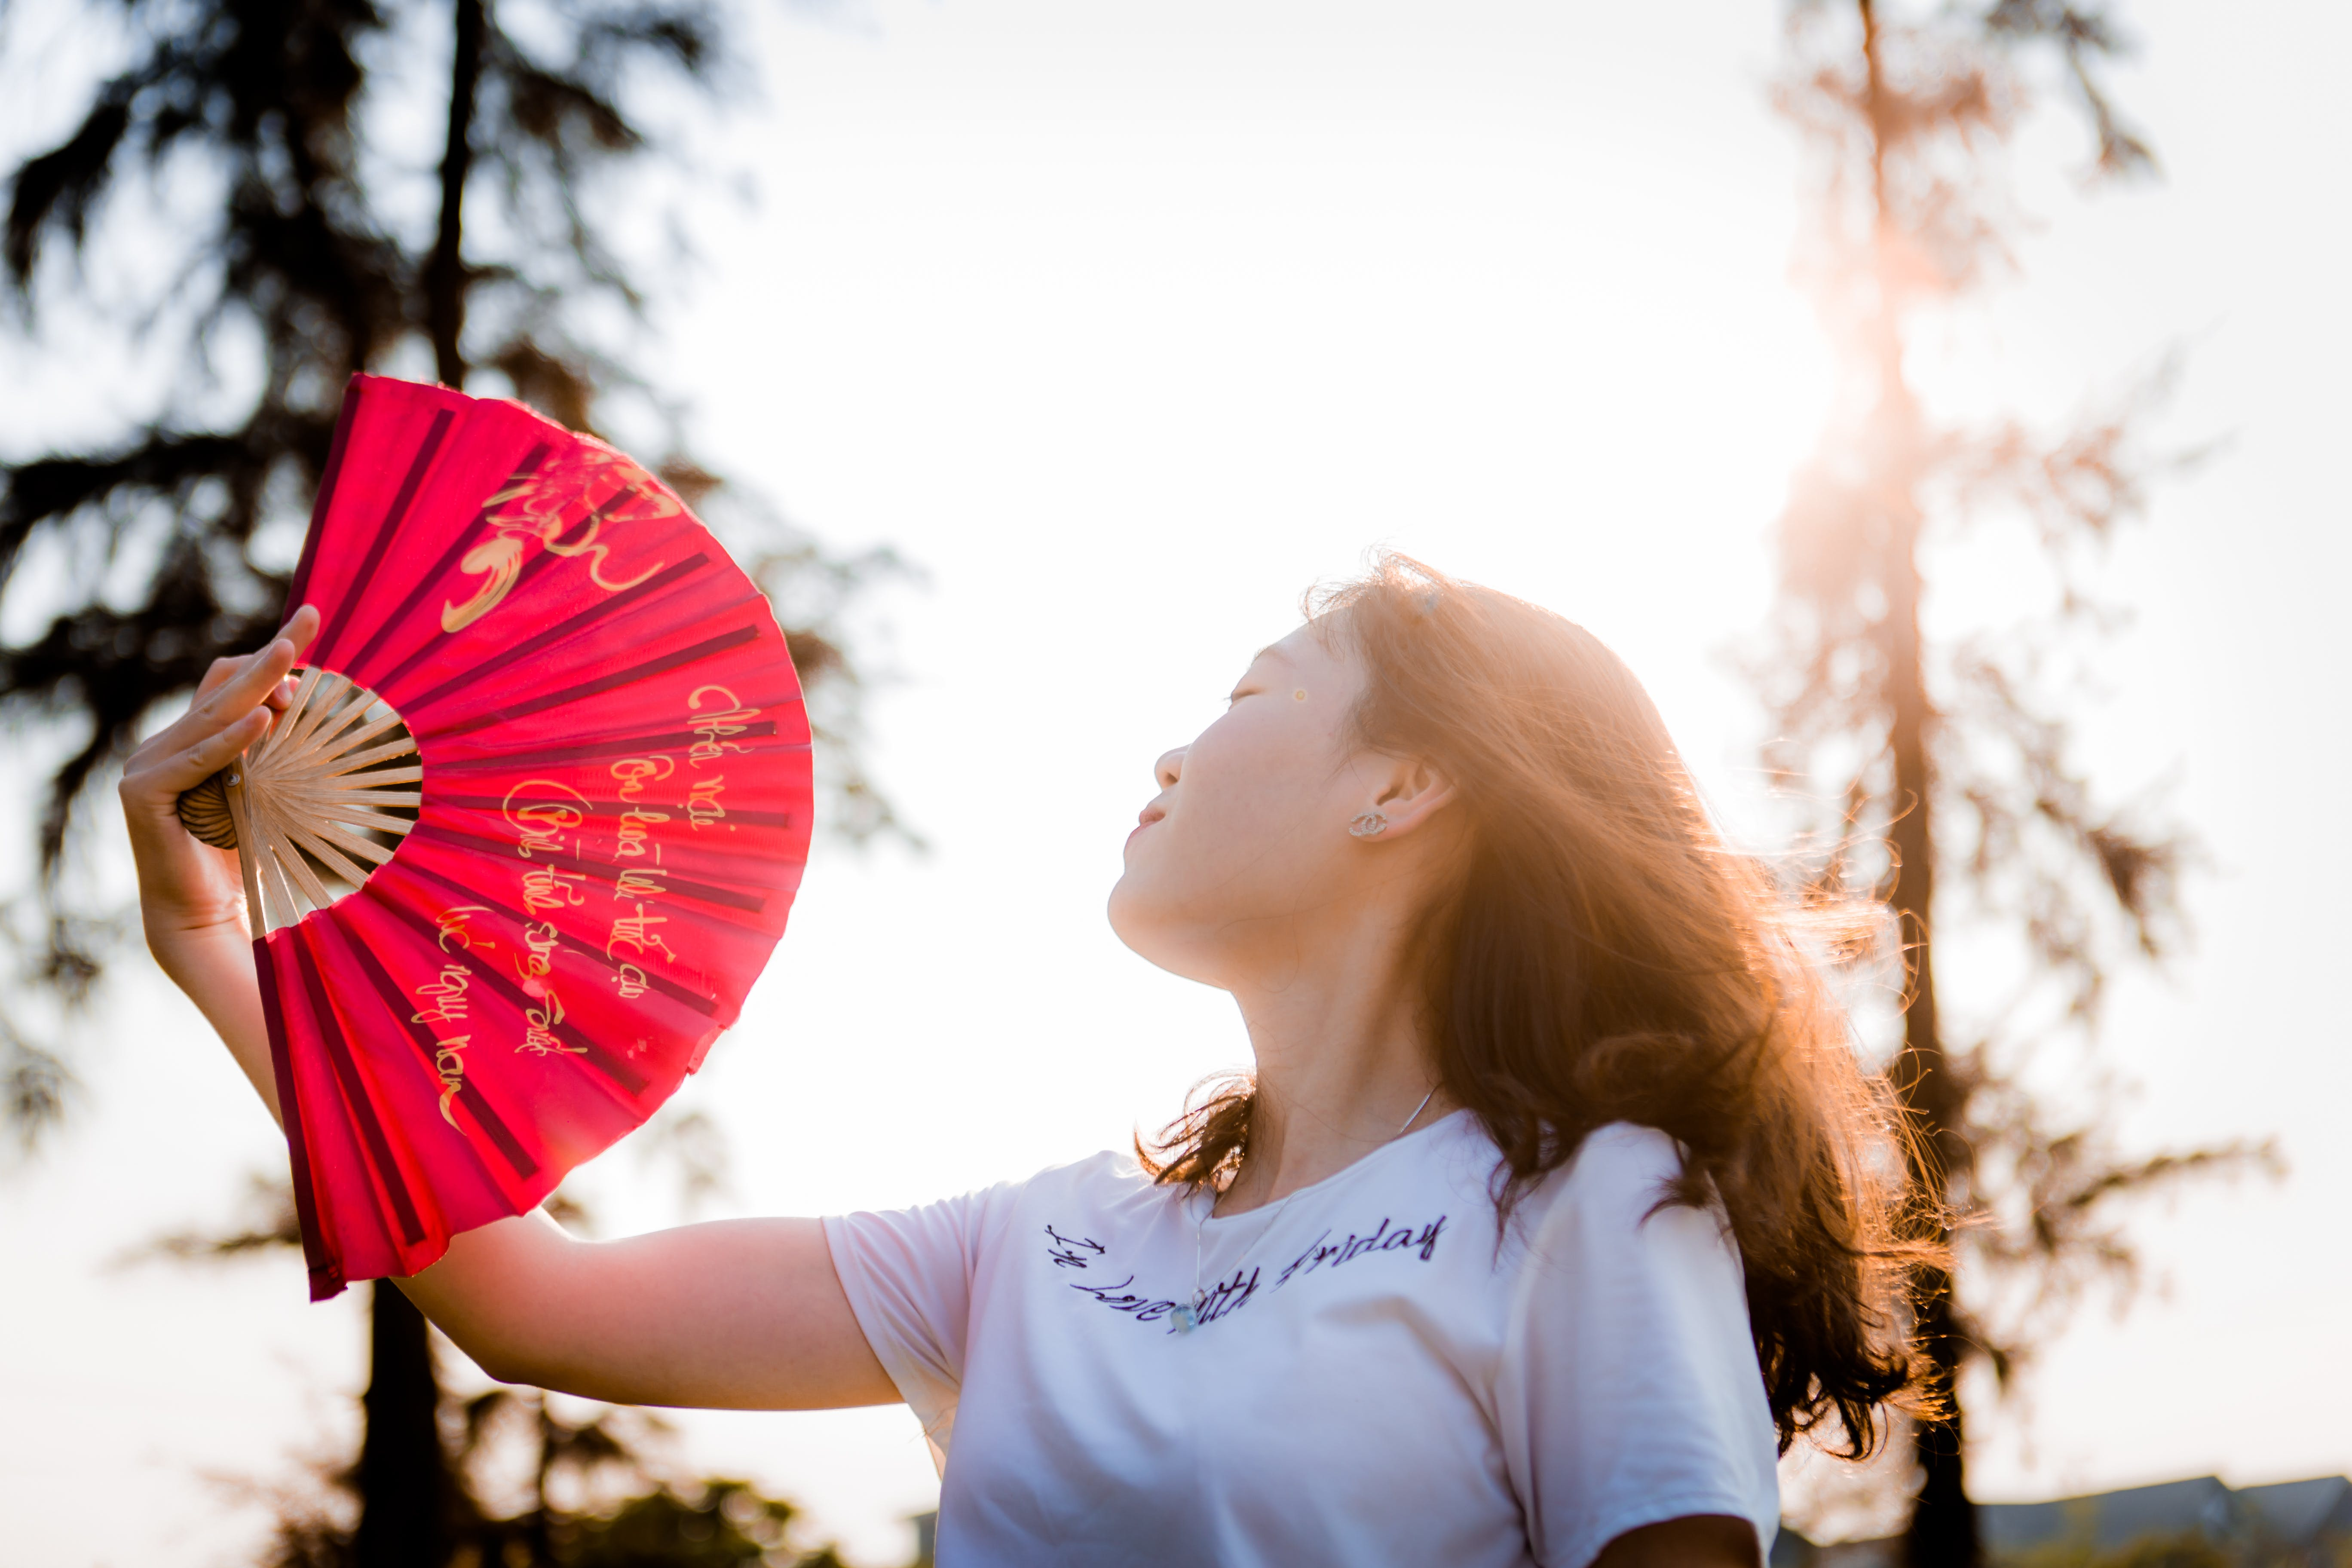 Close-up Photo of Woman Holding Red Hand Fan